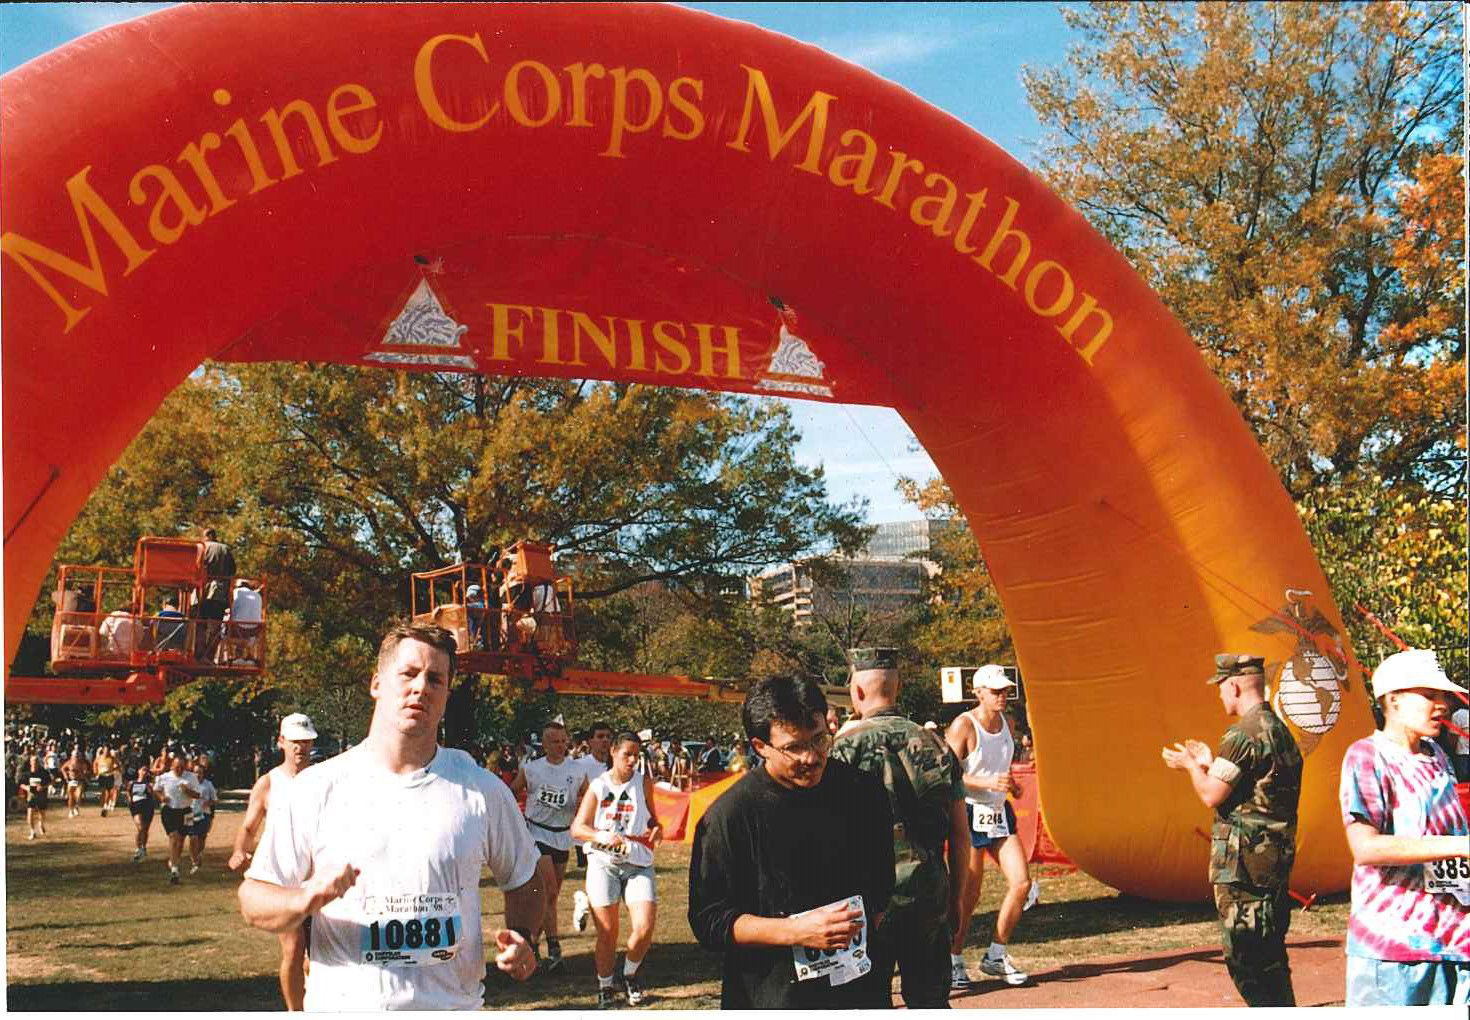 Runners cross the finish line during the 1998 race. (Courtesy Marine Corps Marathon)